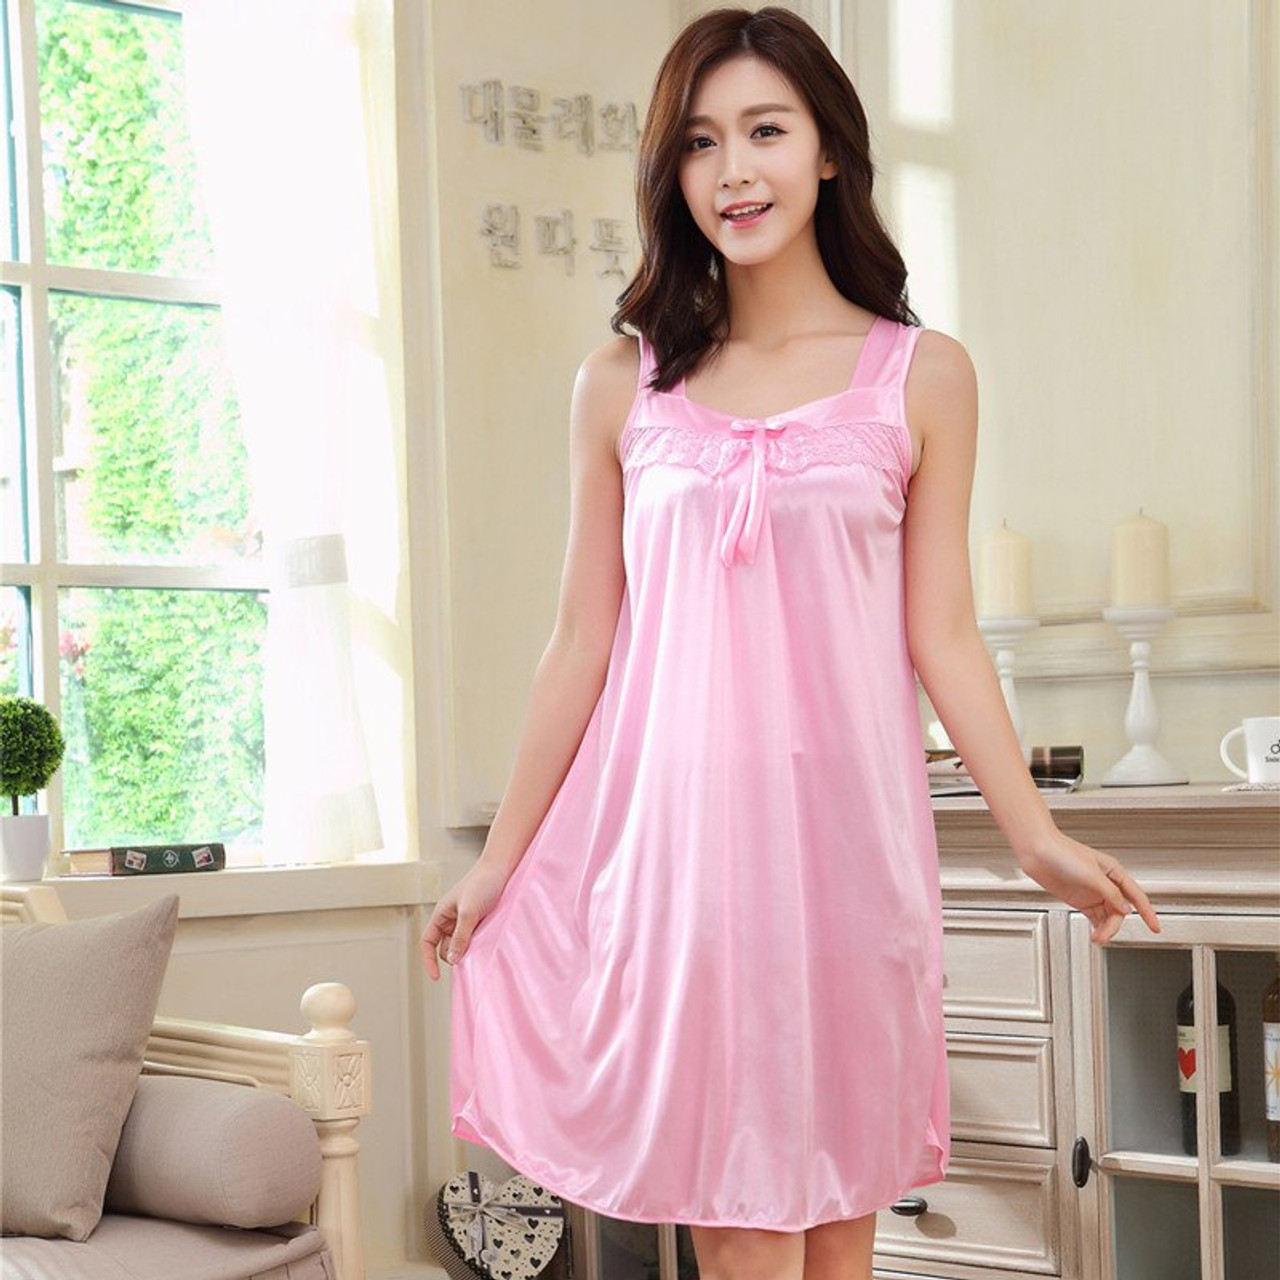 New Fashion Summer Sexy Women Lace Silk Lingeries Nightgowns Causal Ladies Nightdress Sleepwears Female Large Size 5 Colors Onshopdeals Com